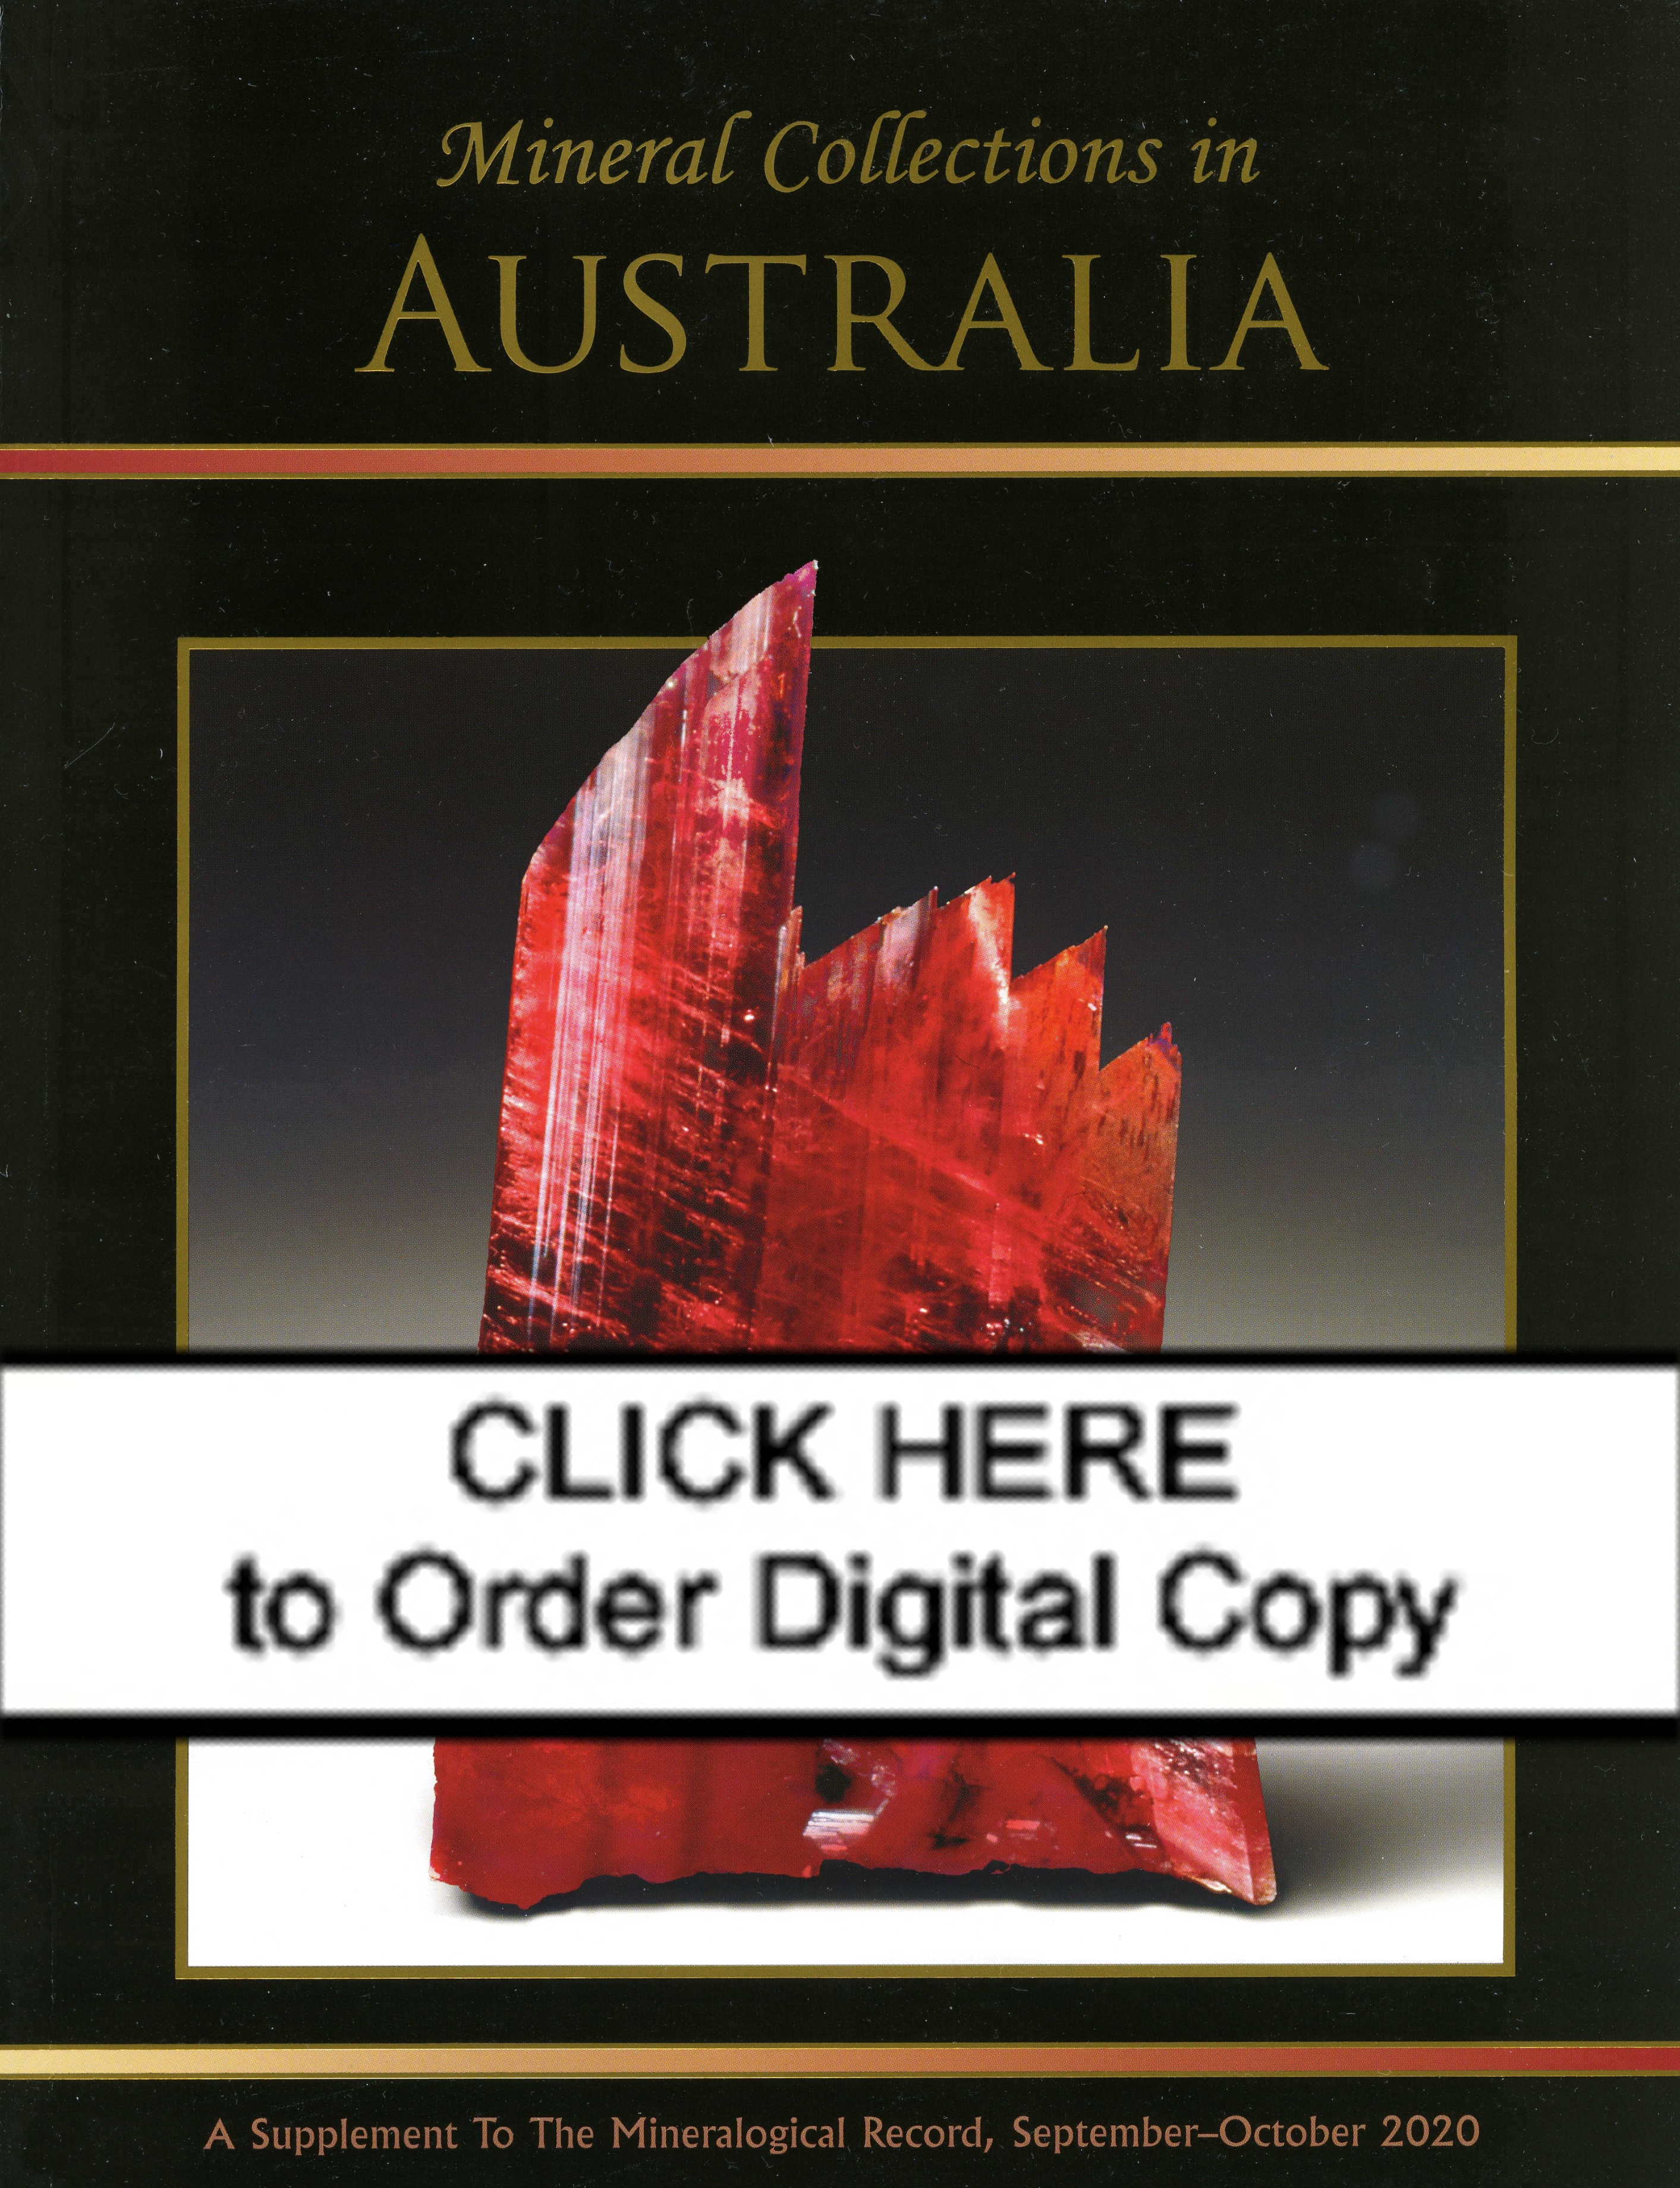 DIGITAL Mineral Collections in Australia